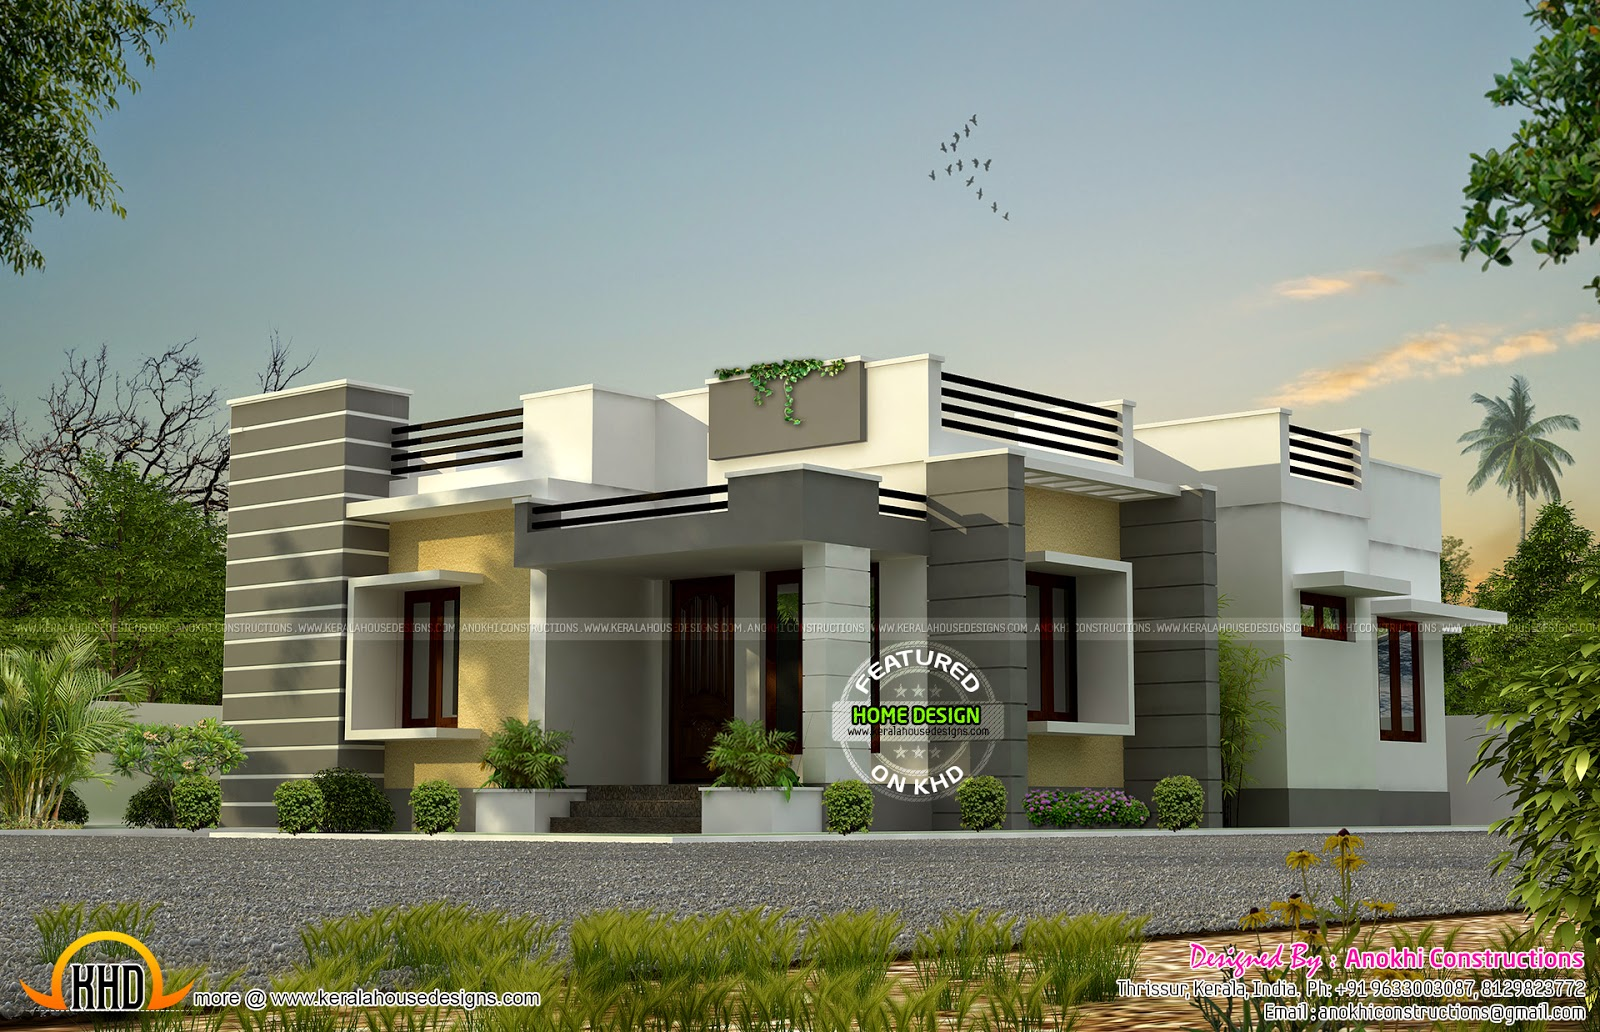 Nice budget house design kerala home design and floor plans for Nice home plans